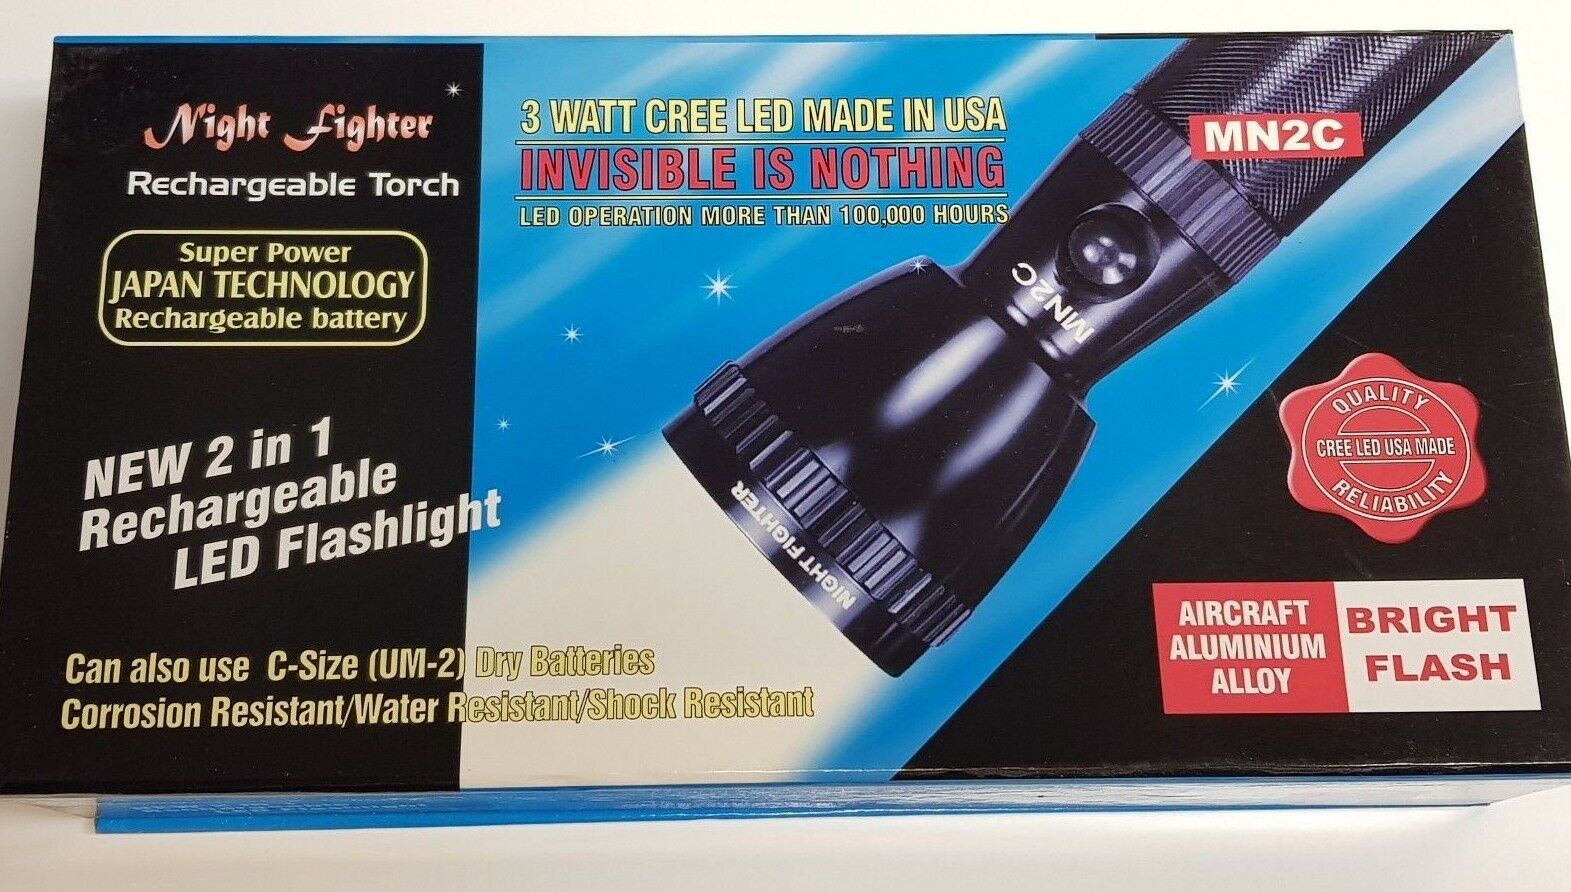 Night Fighter USA Made DEL CREE haute puissance Slim Slim Slim Torche Rechargeable Rechargeble 55025d